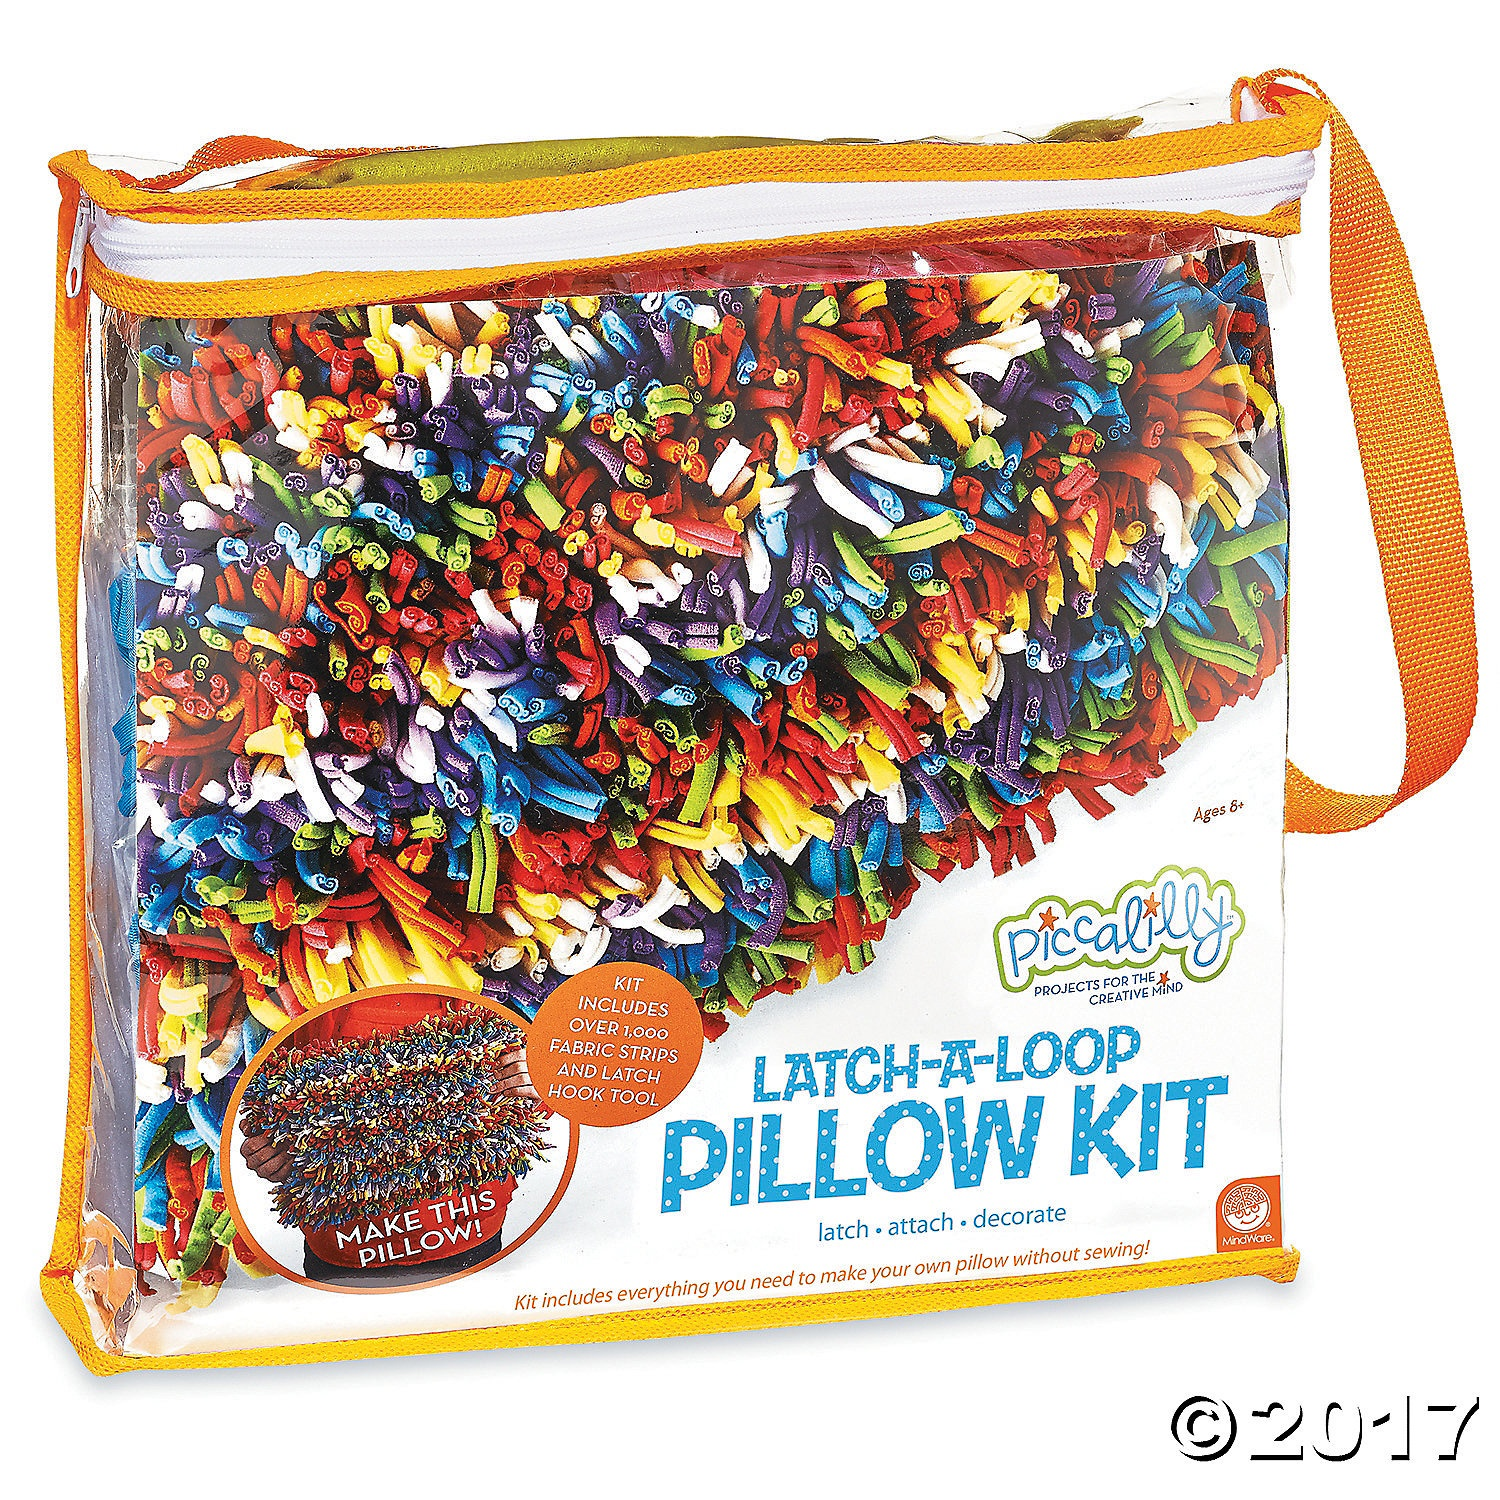 X MW 68427 PICALILLY LATCH-A-LOOP PILLOW KIT